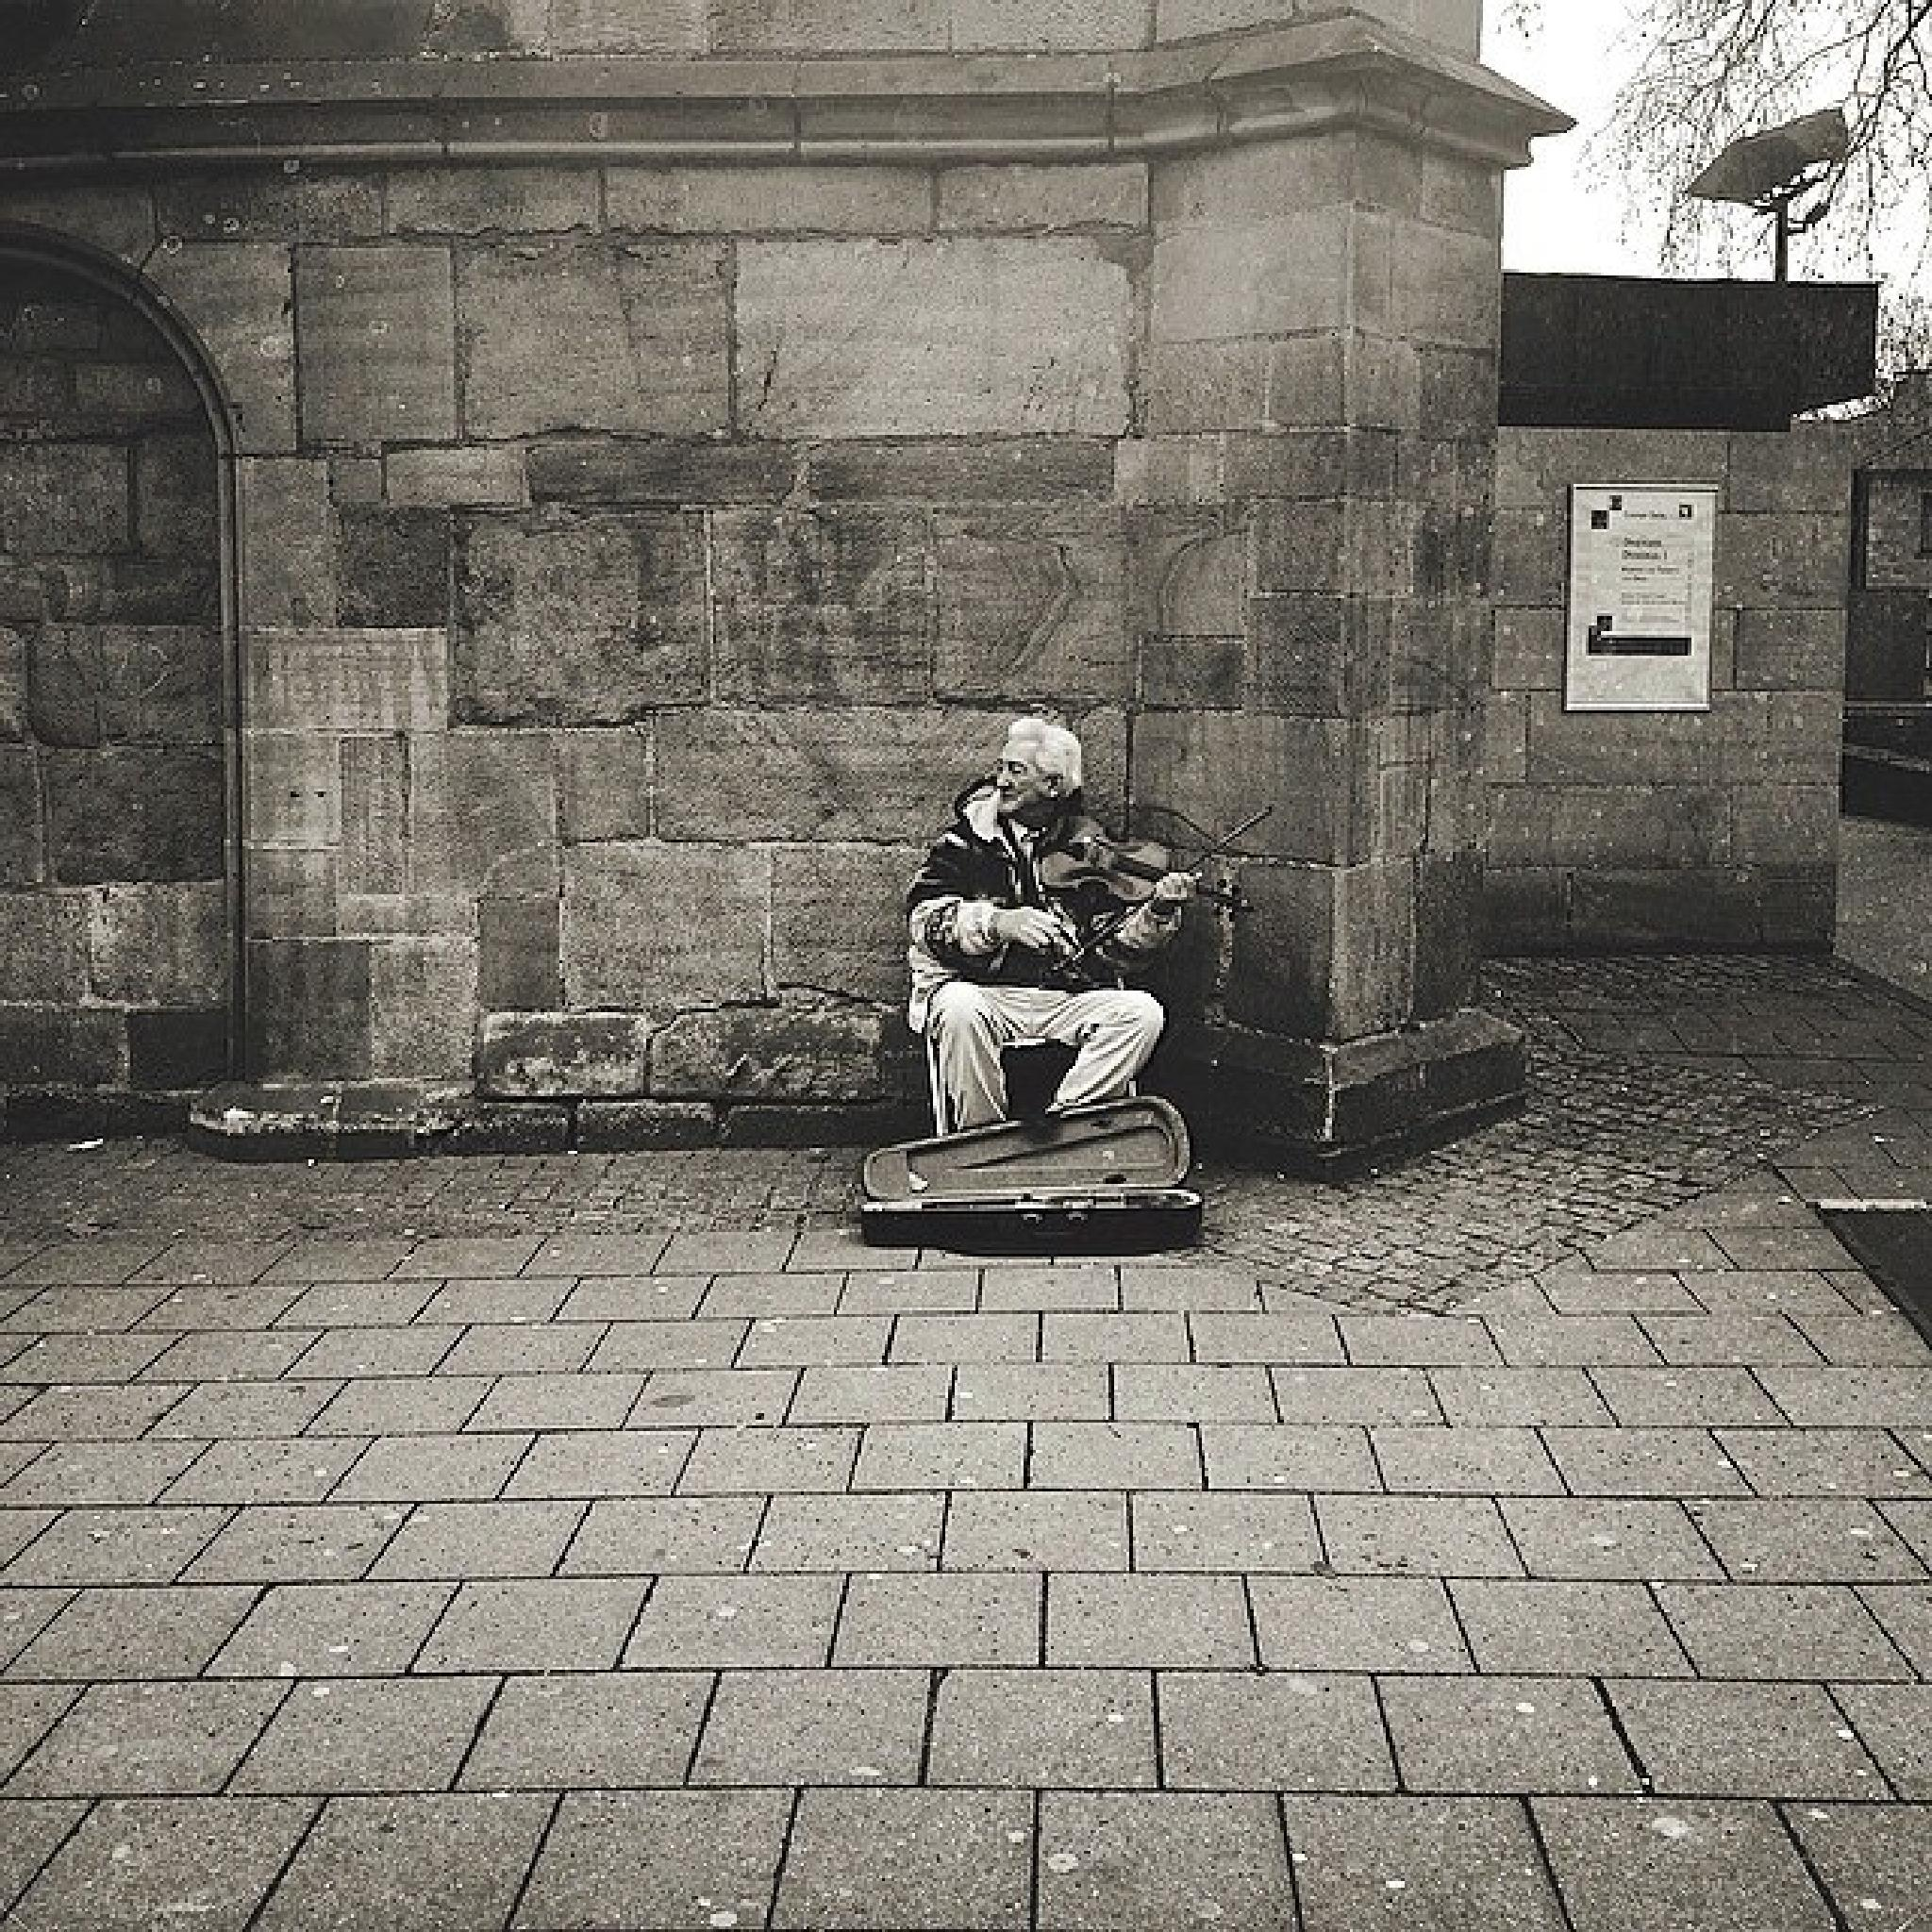 old man in the street gives a happy melody by Armin Mahmutovic